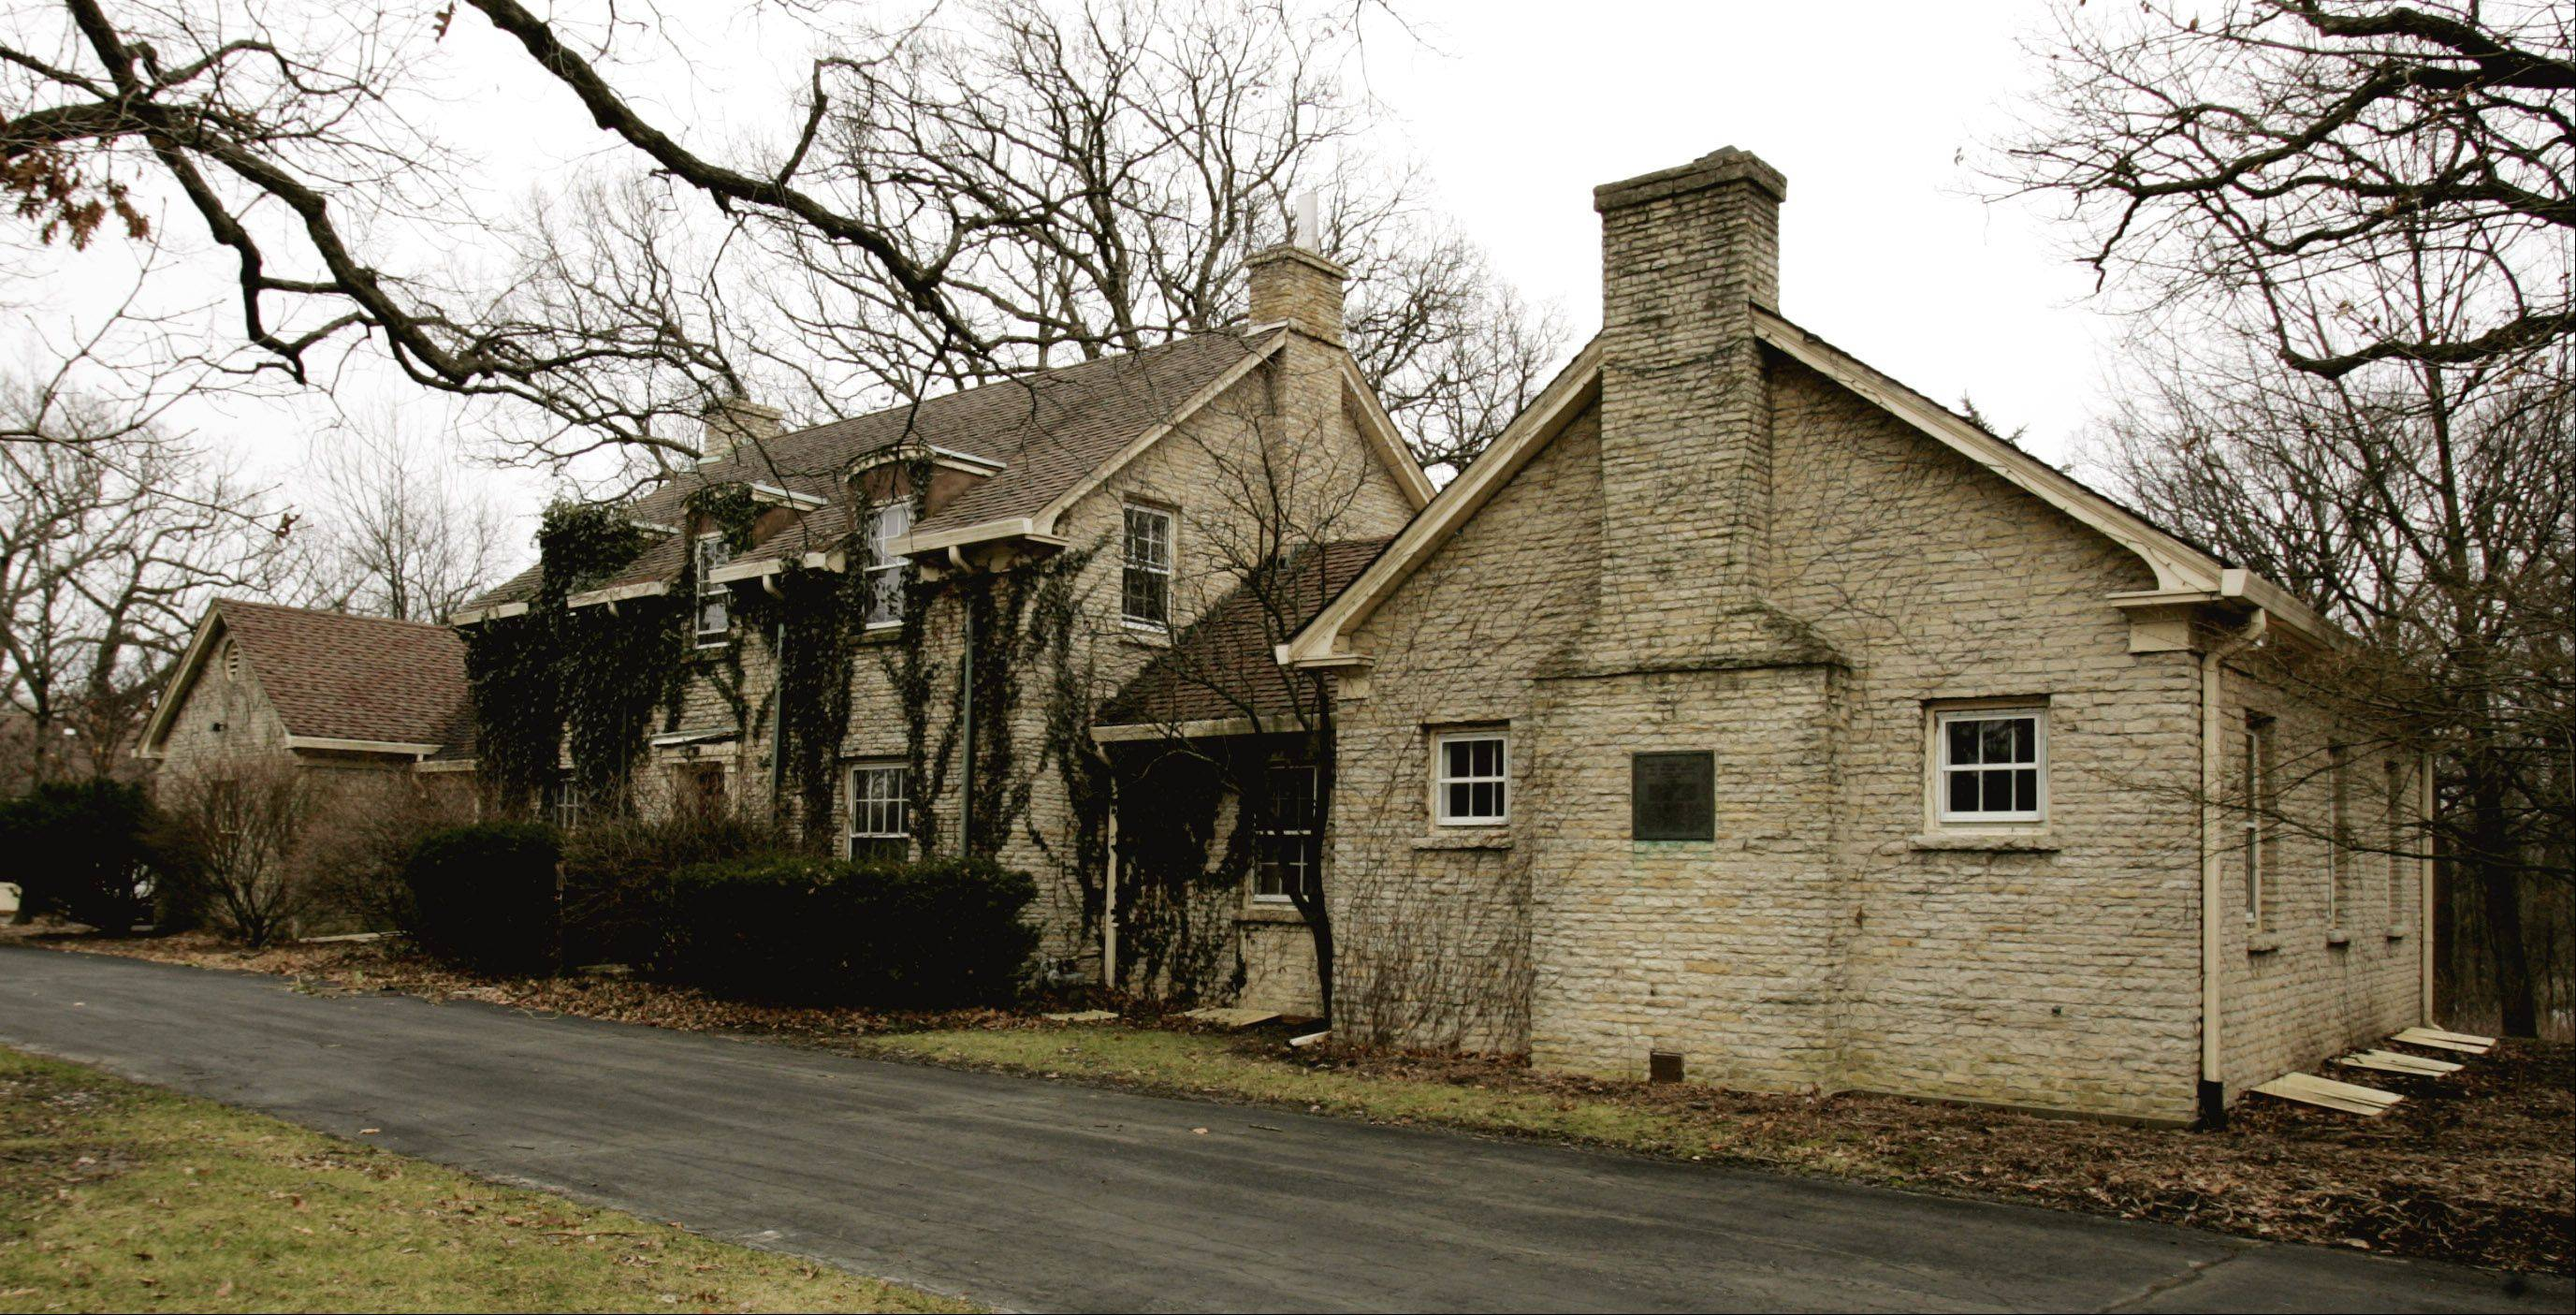 Forest preserve to study structure, uses for McKee House